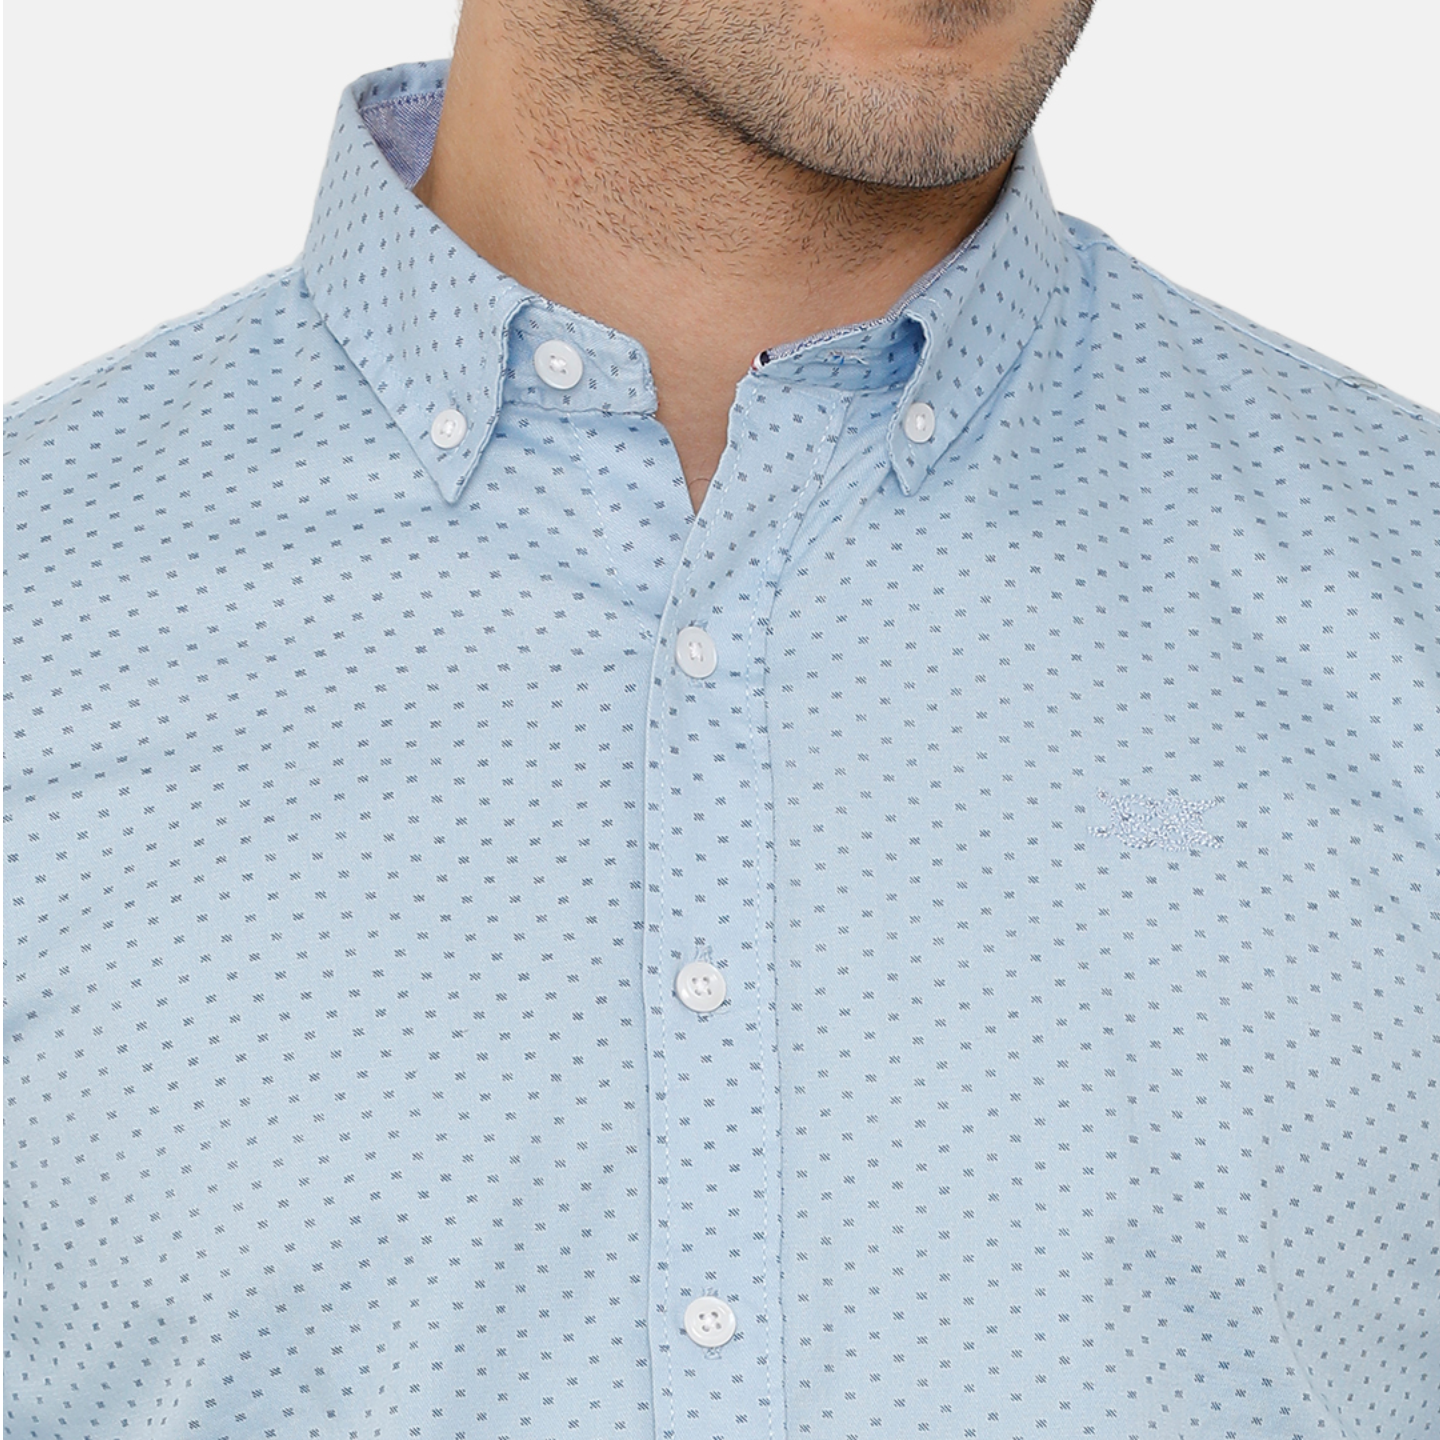 Bar Harbour Blue Printed Casual Shirt